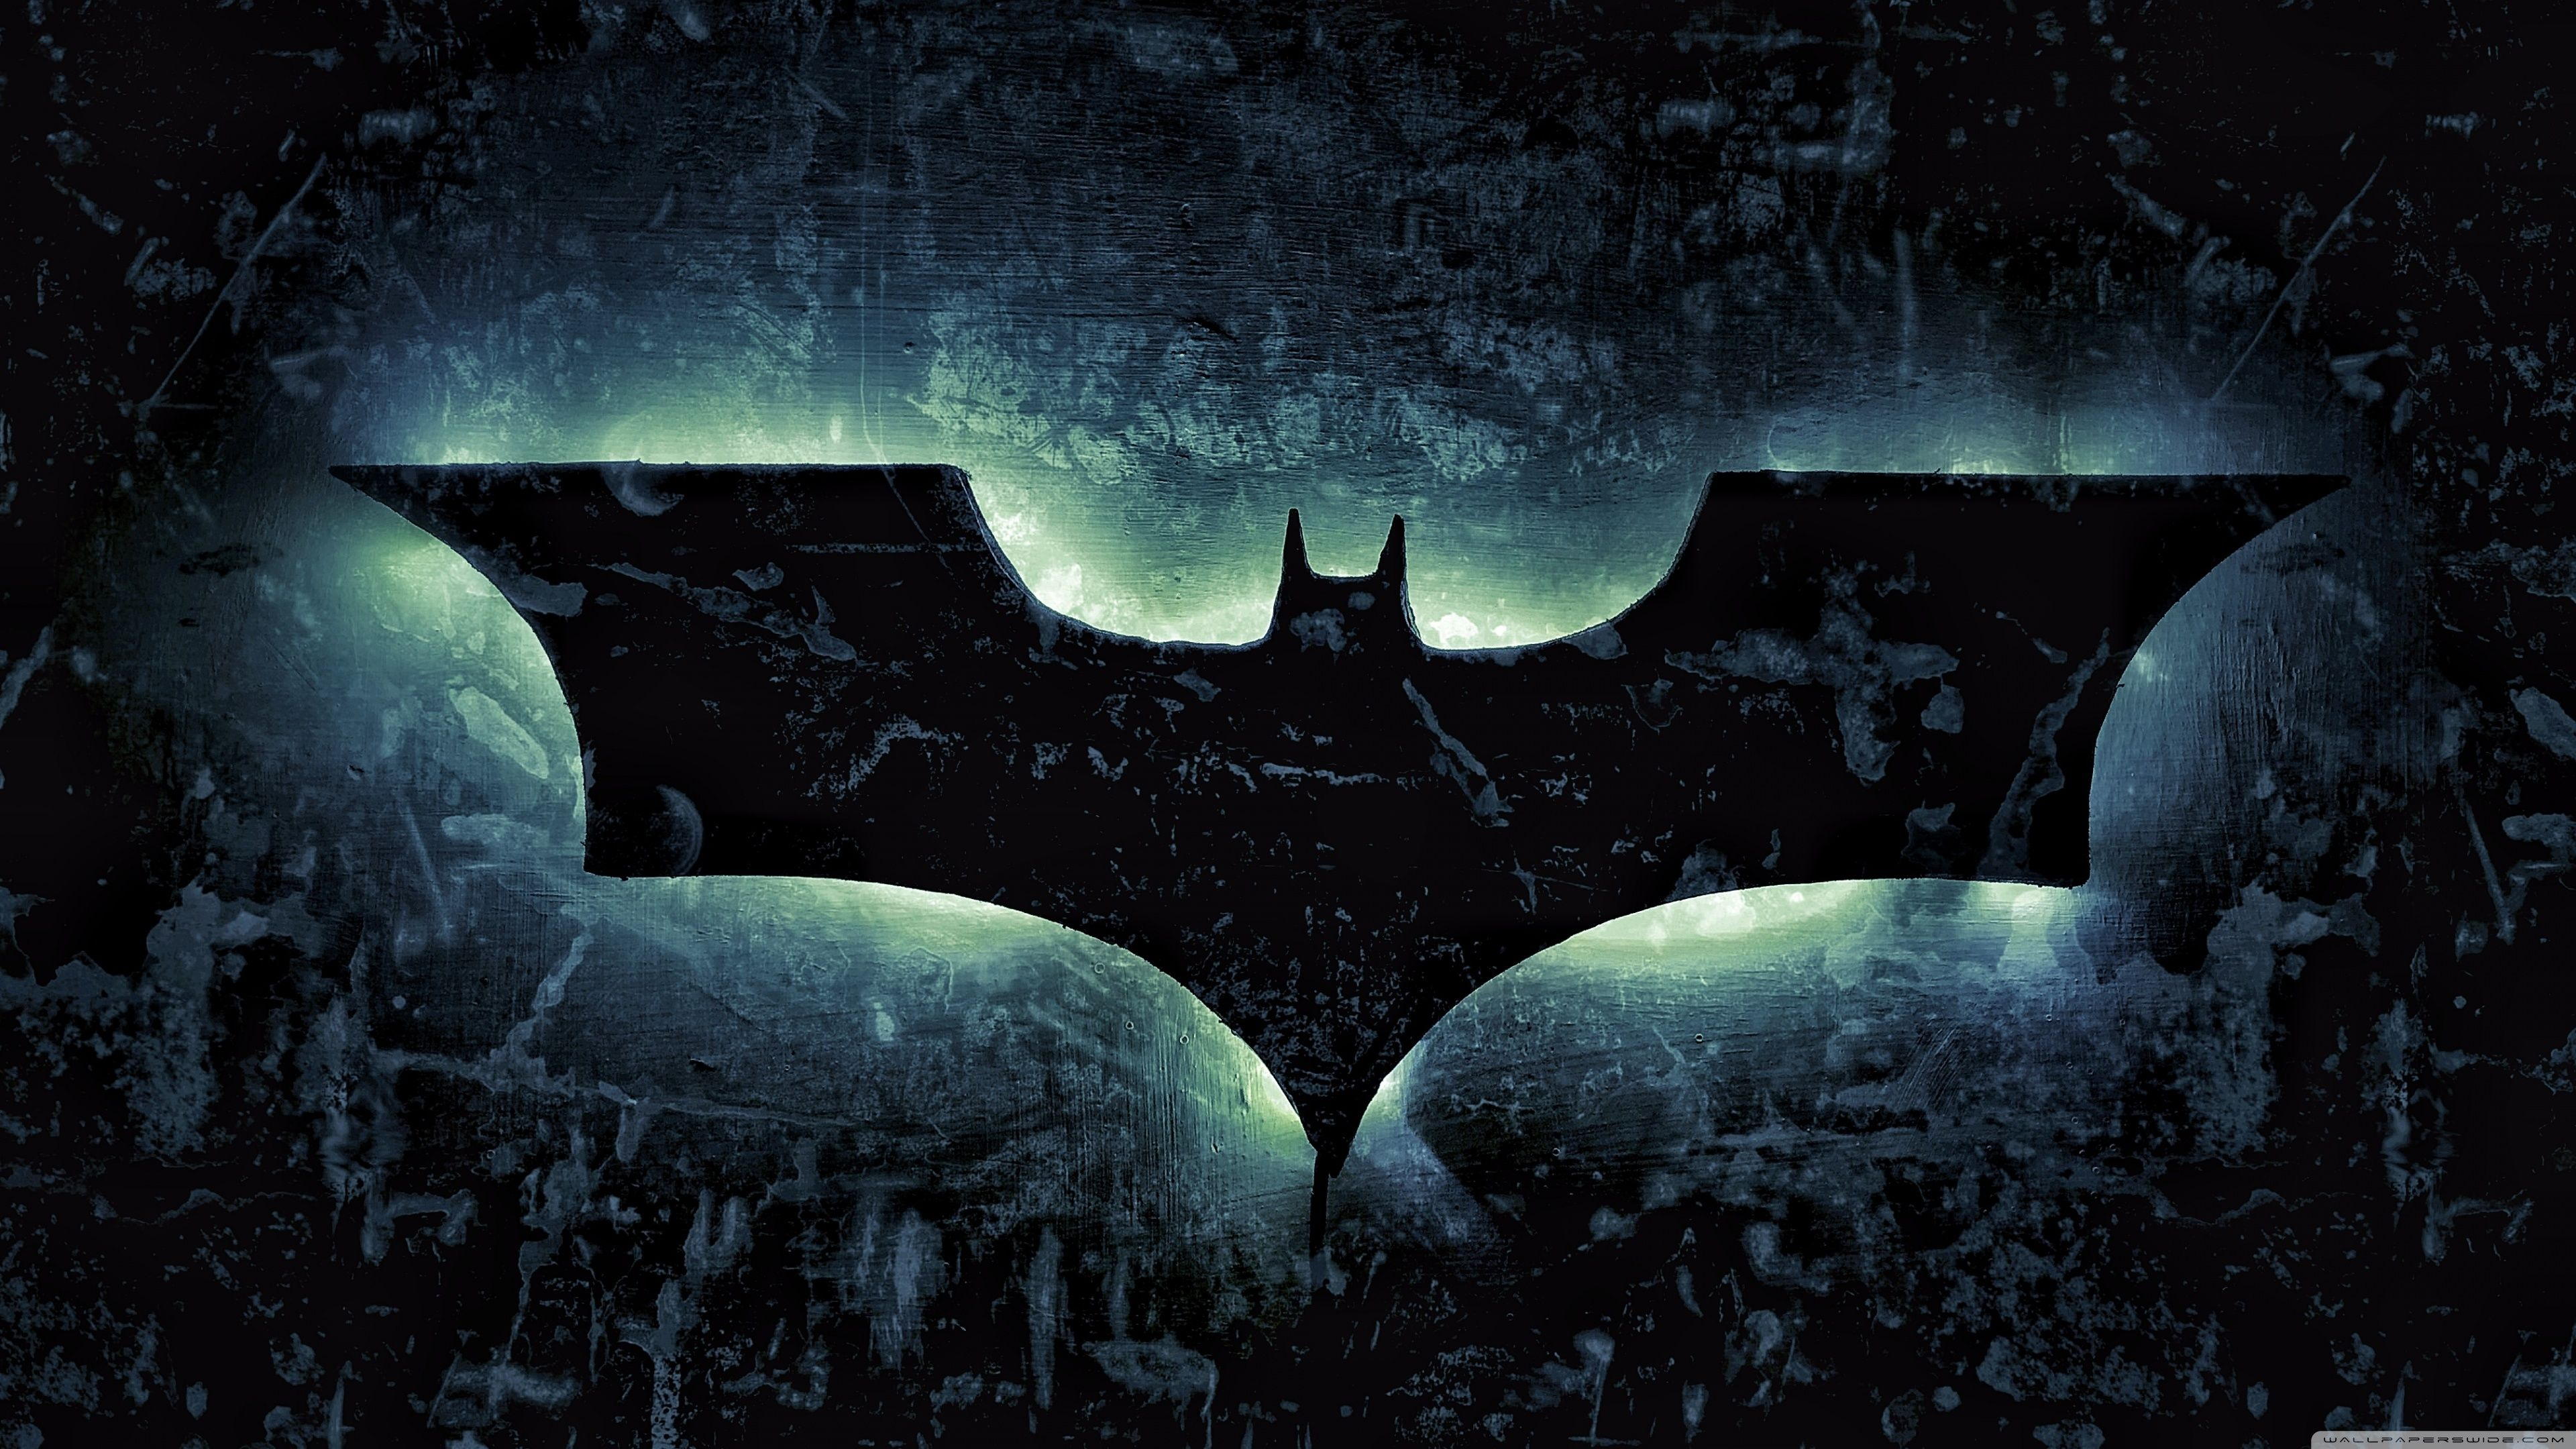 Awesome Batman Hd Wallpaper 4k wallpapers to download for free greenvirals